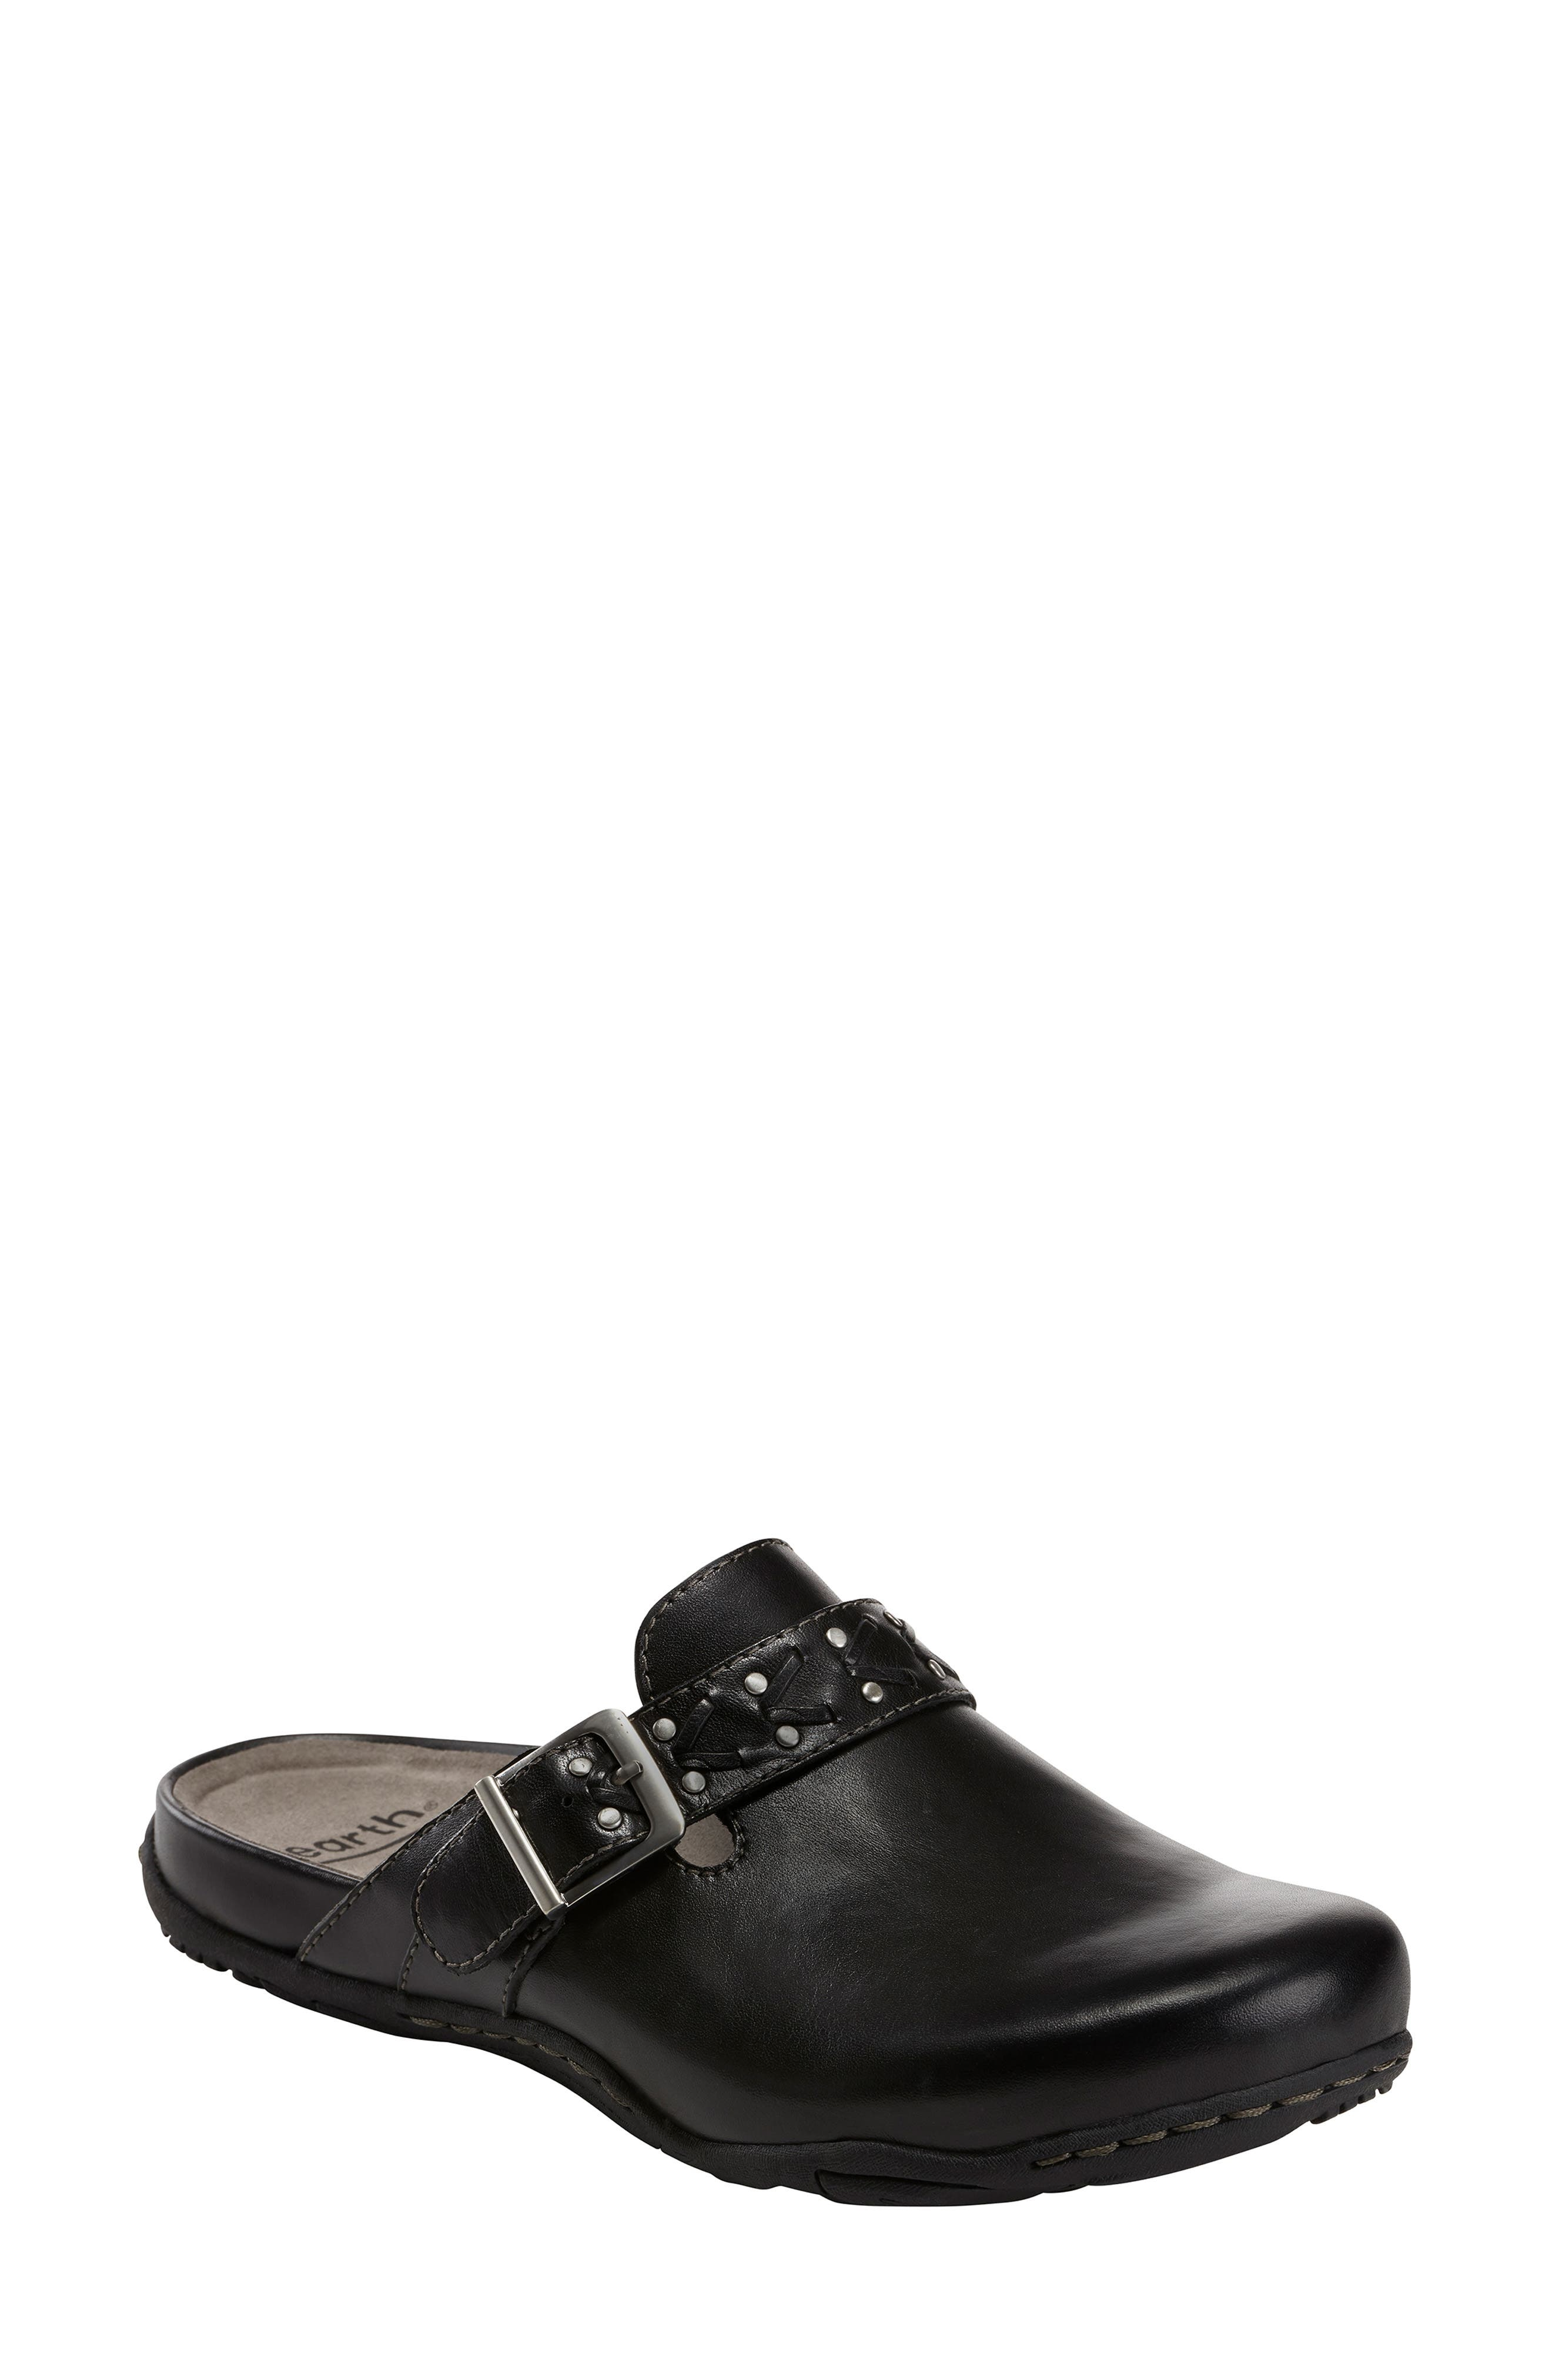 Cayman Clog,                             Main thumbnail 1, color,                             BLACK LEATHER